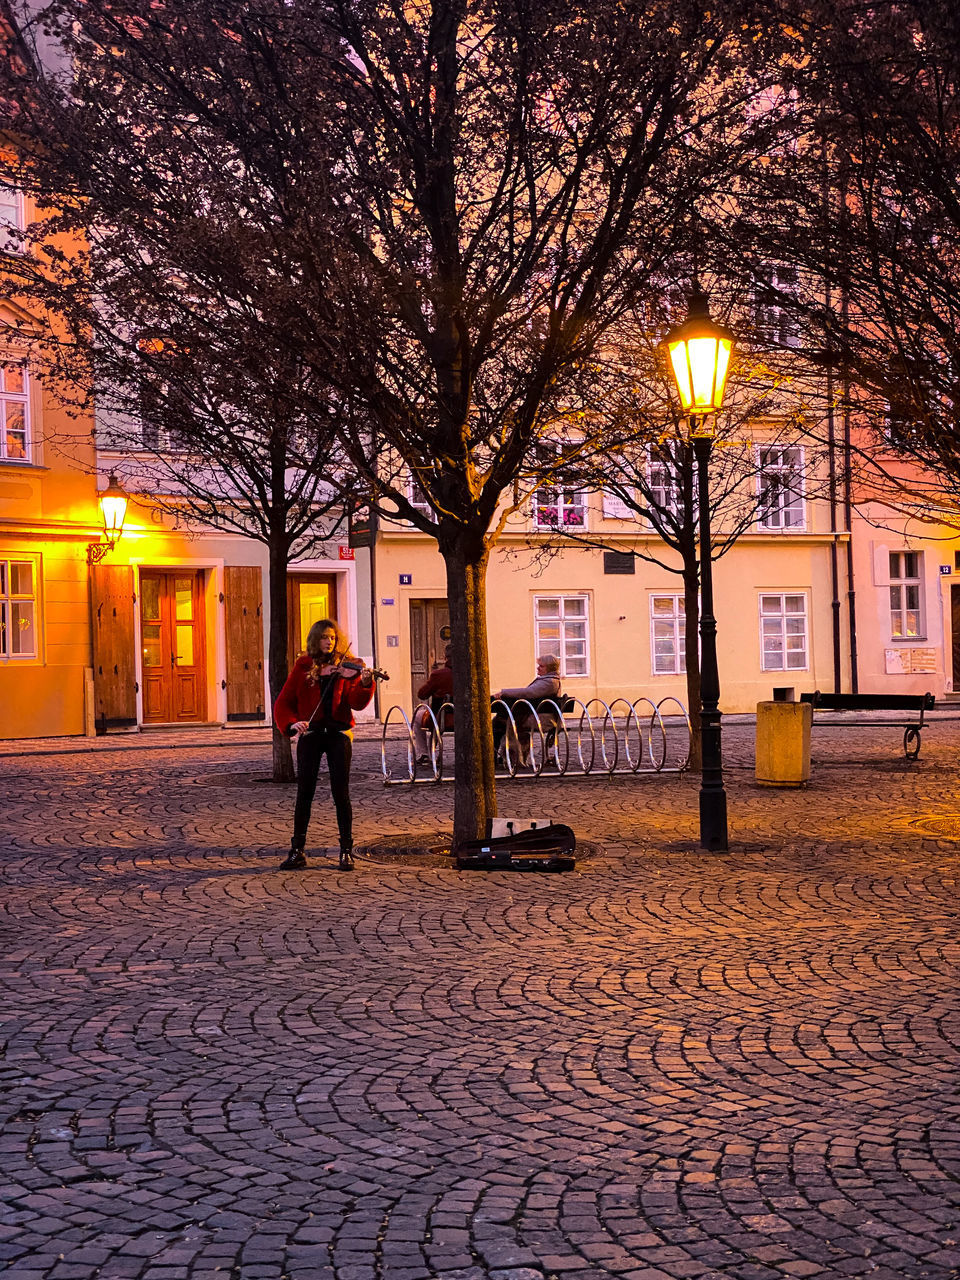 WOMAN WALKING ON STREET BY ILLUMINATED BUILDING